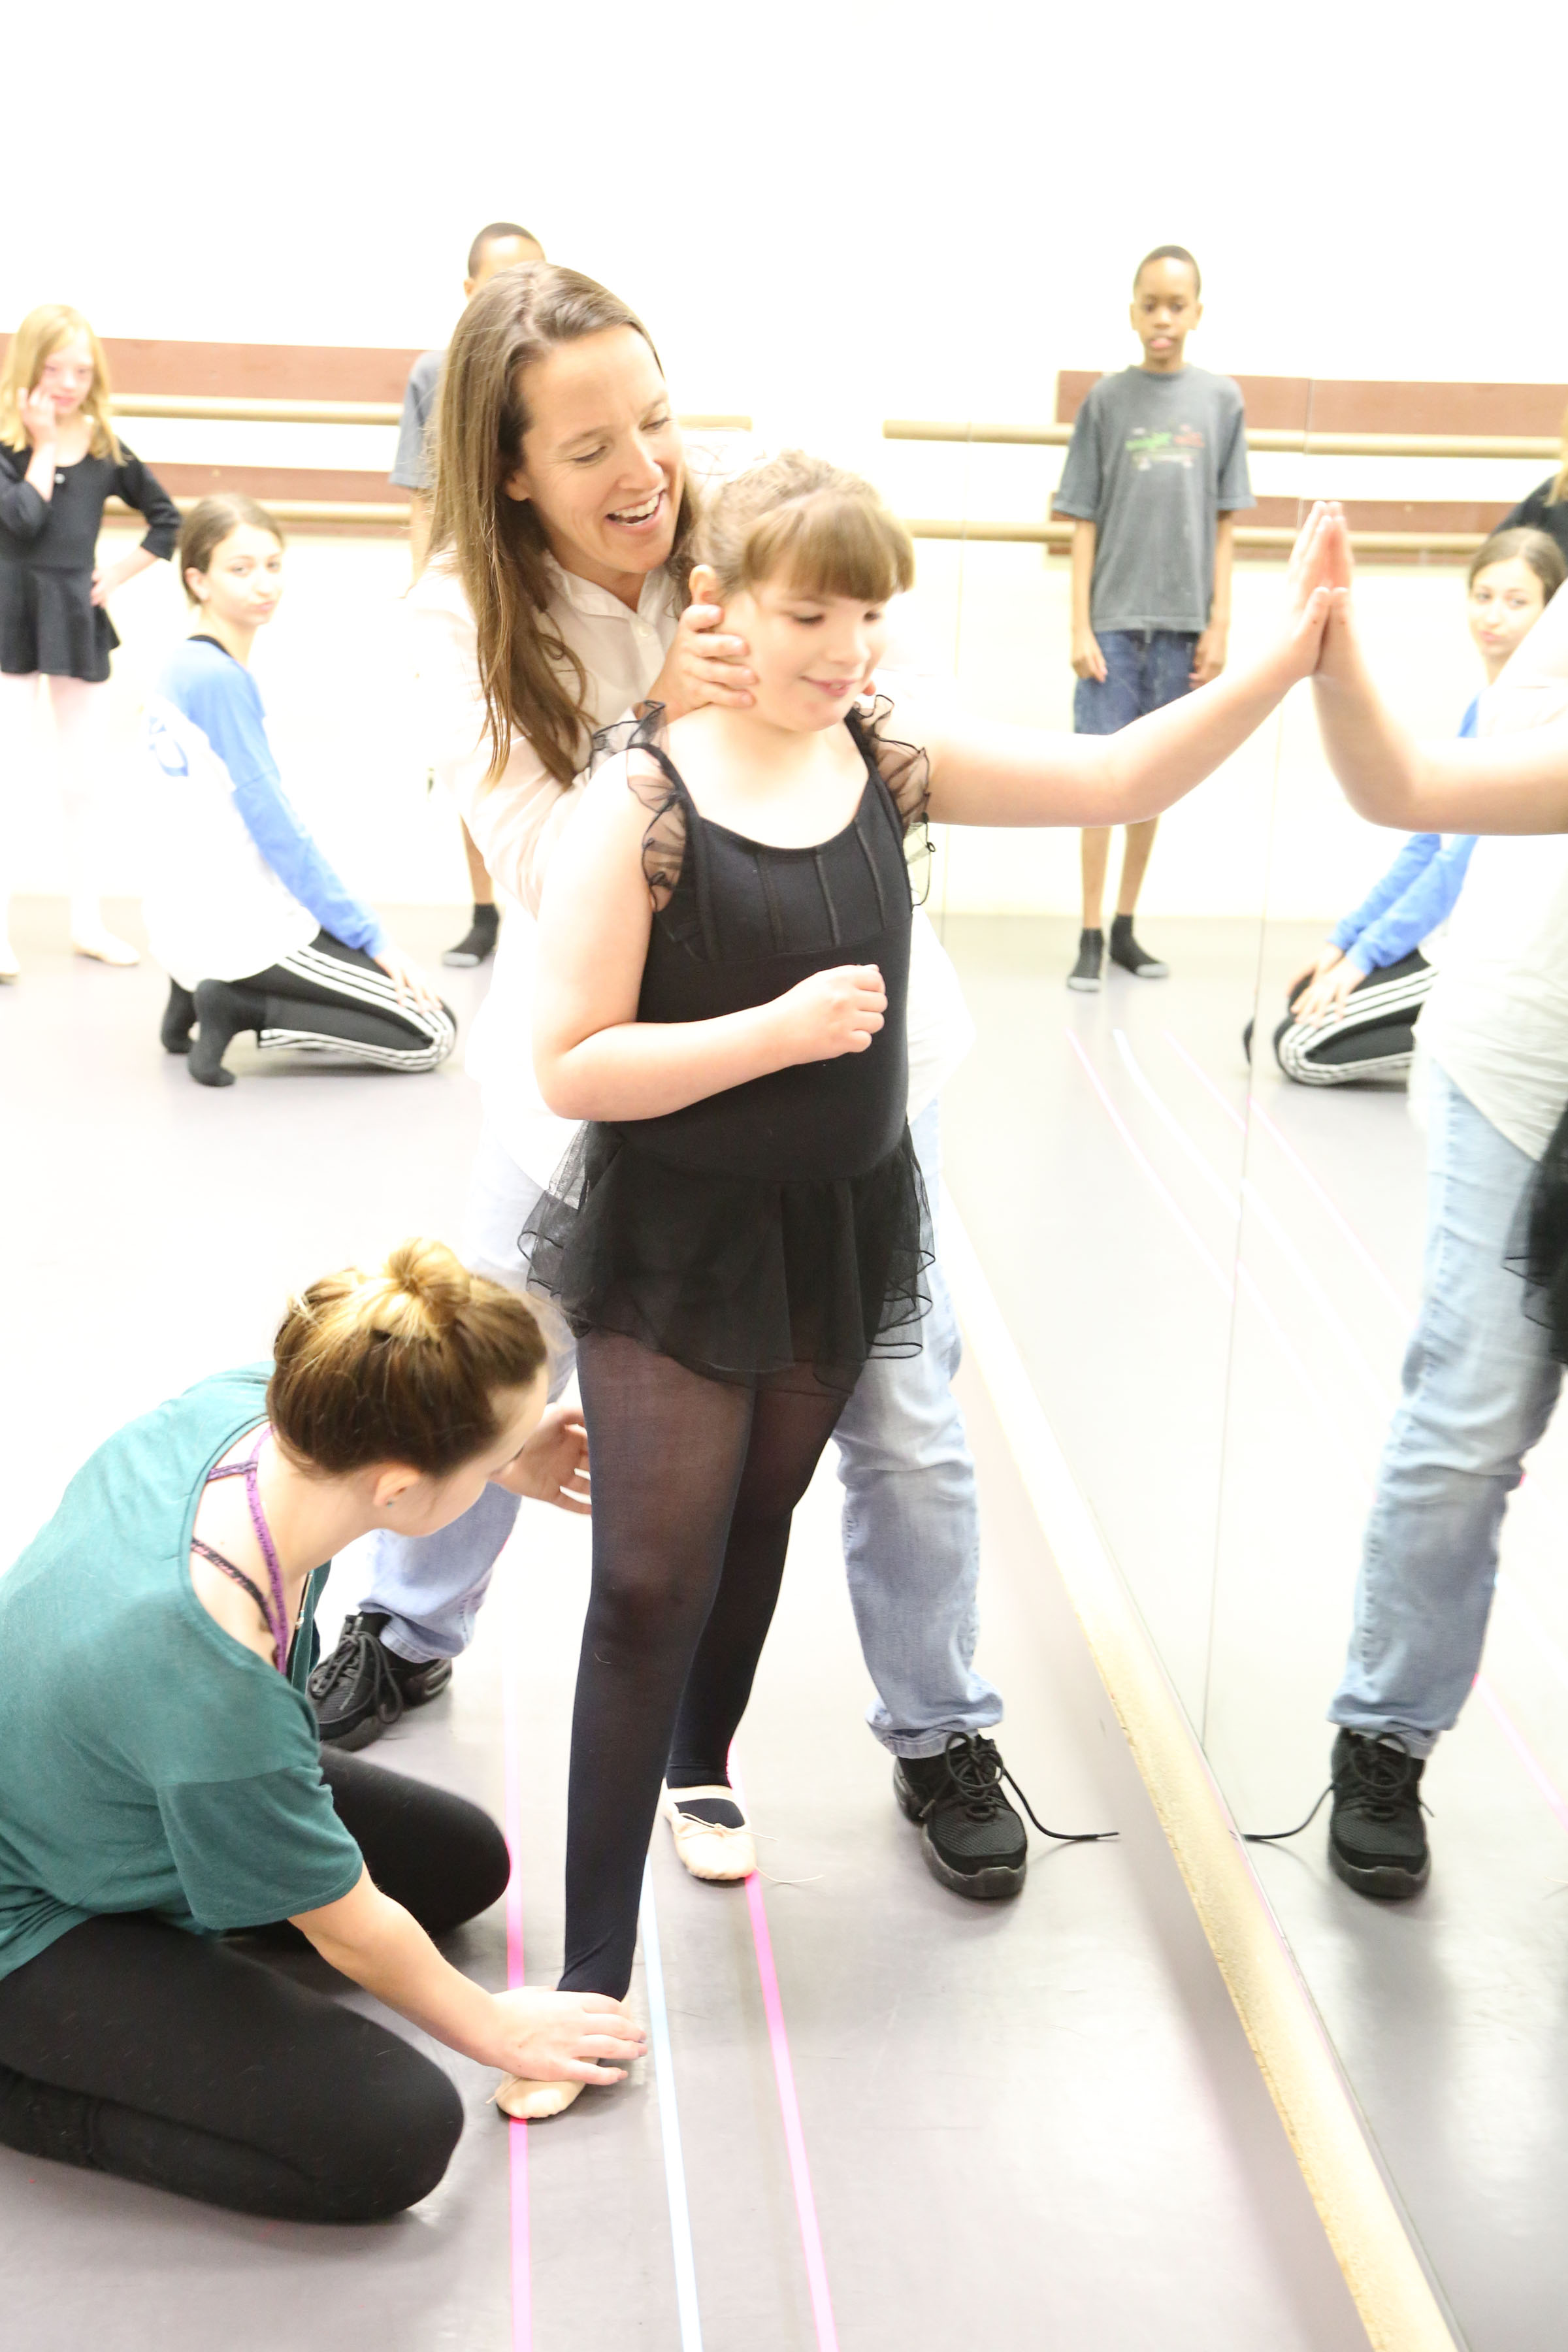 Students learning ballet walk and proper turnout.